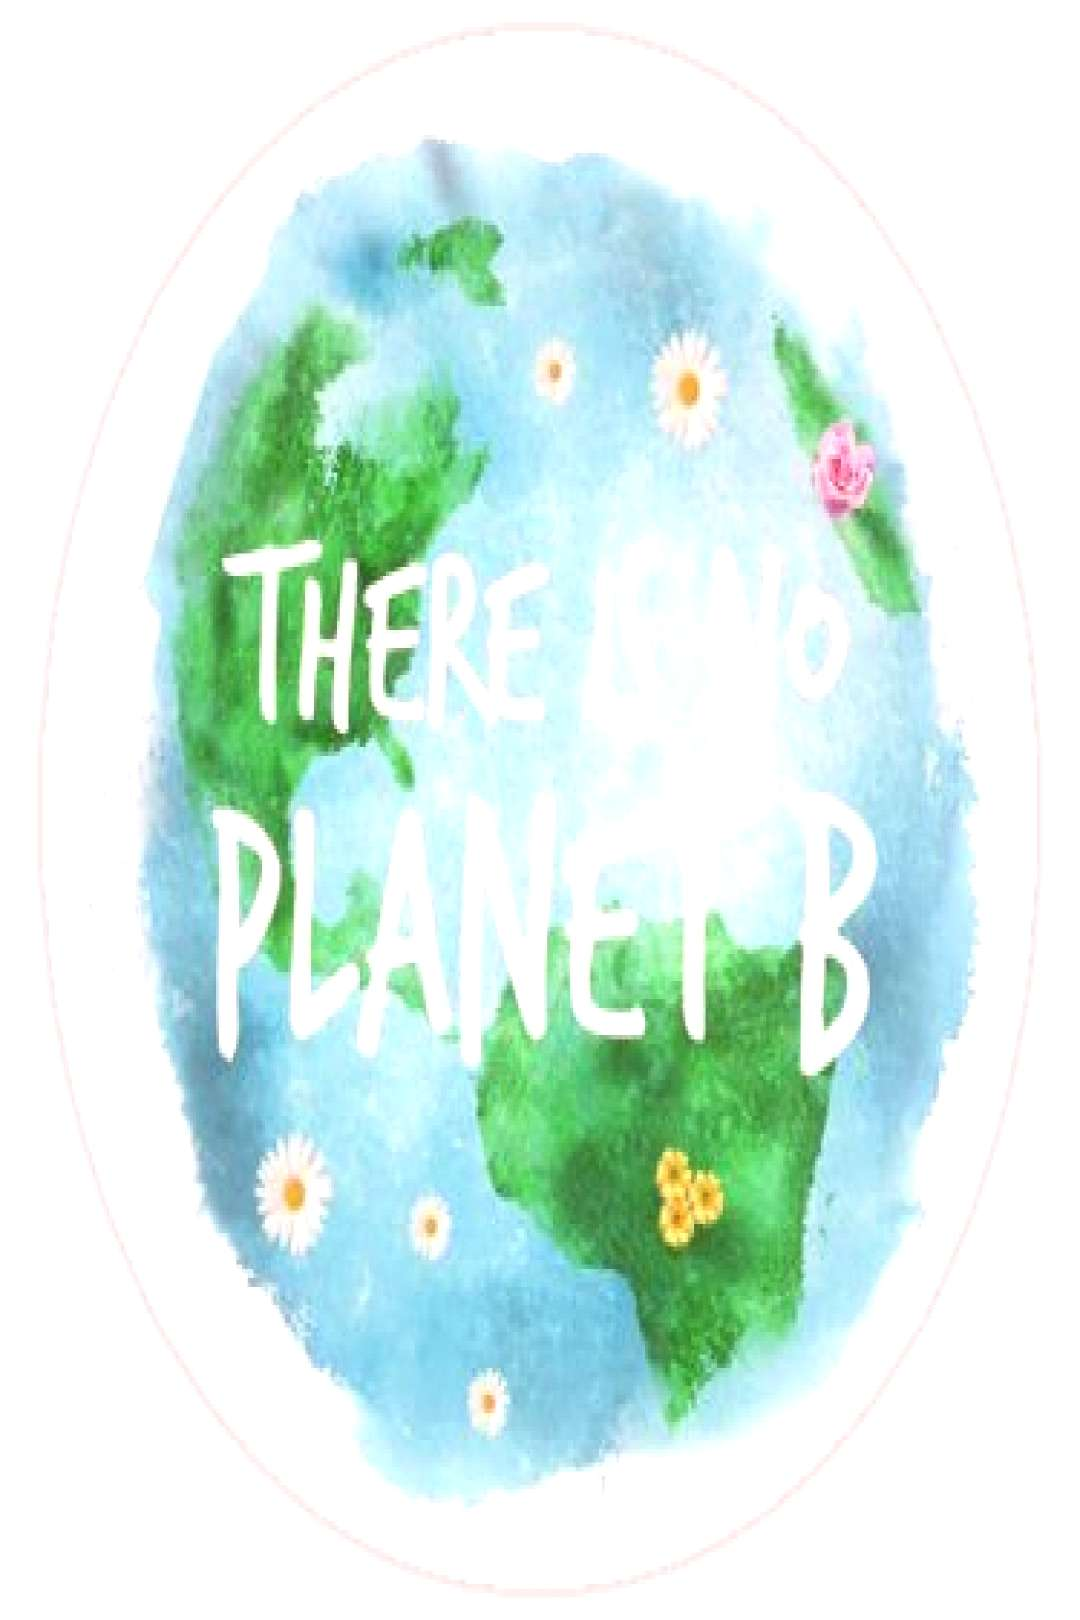 save planet earth Sticker